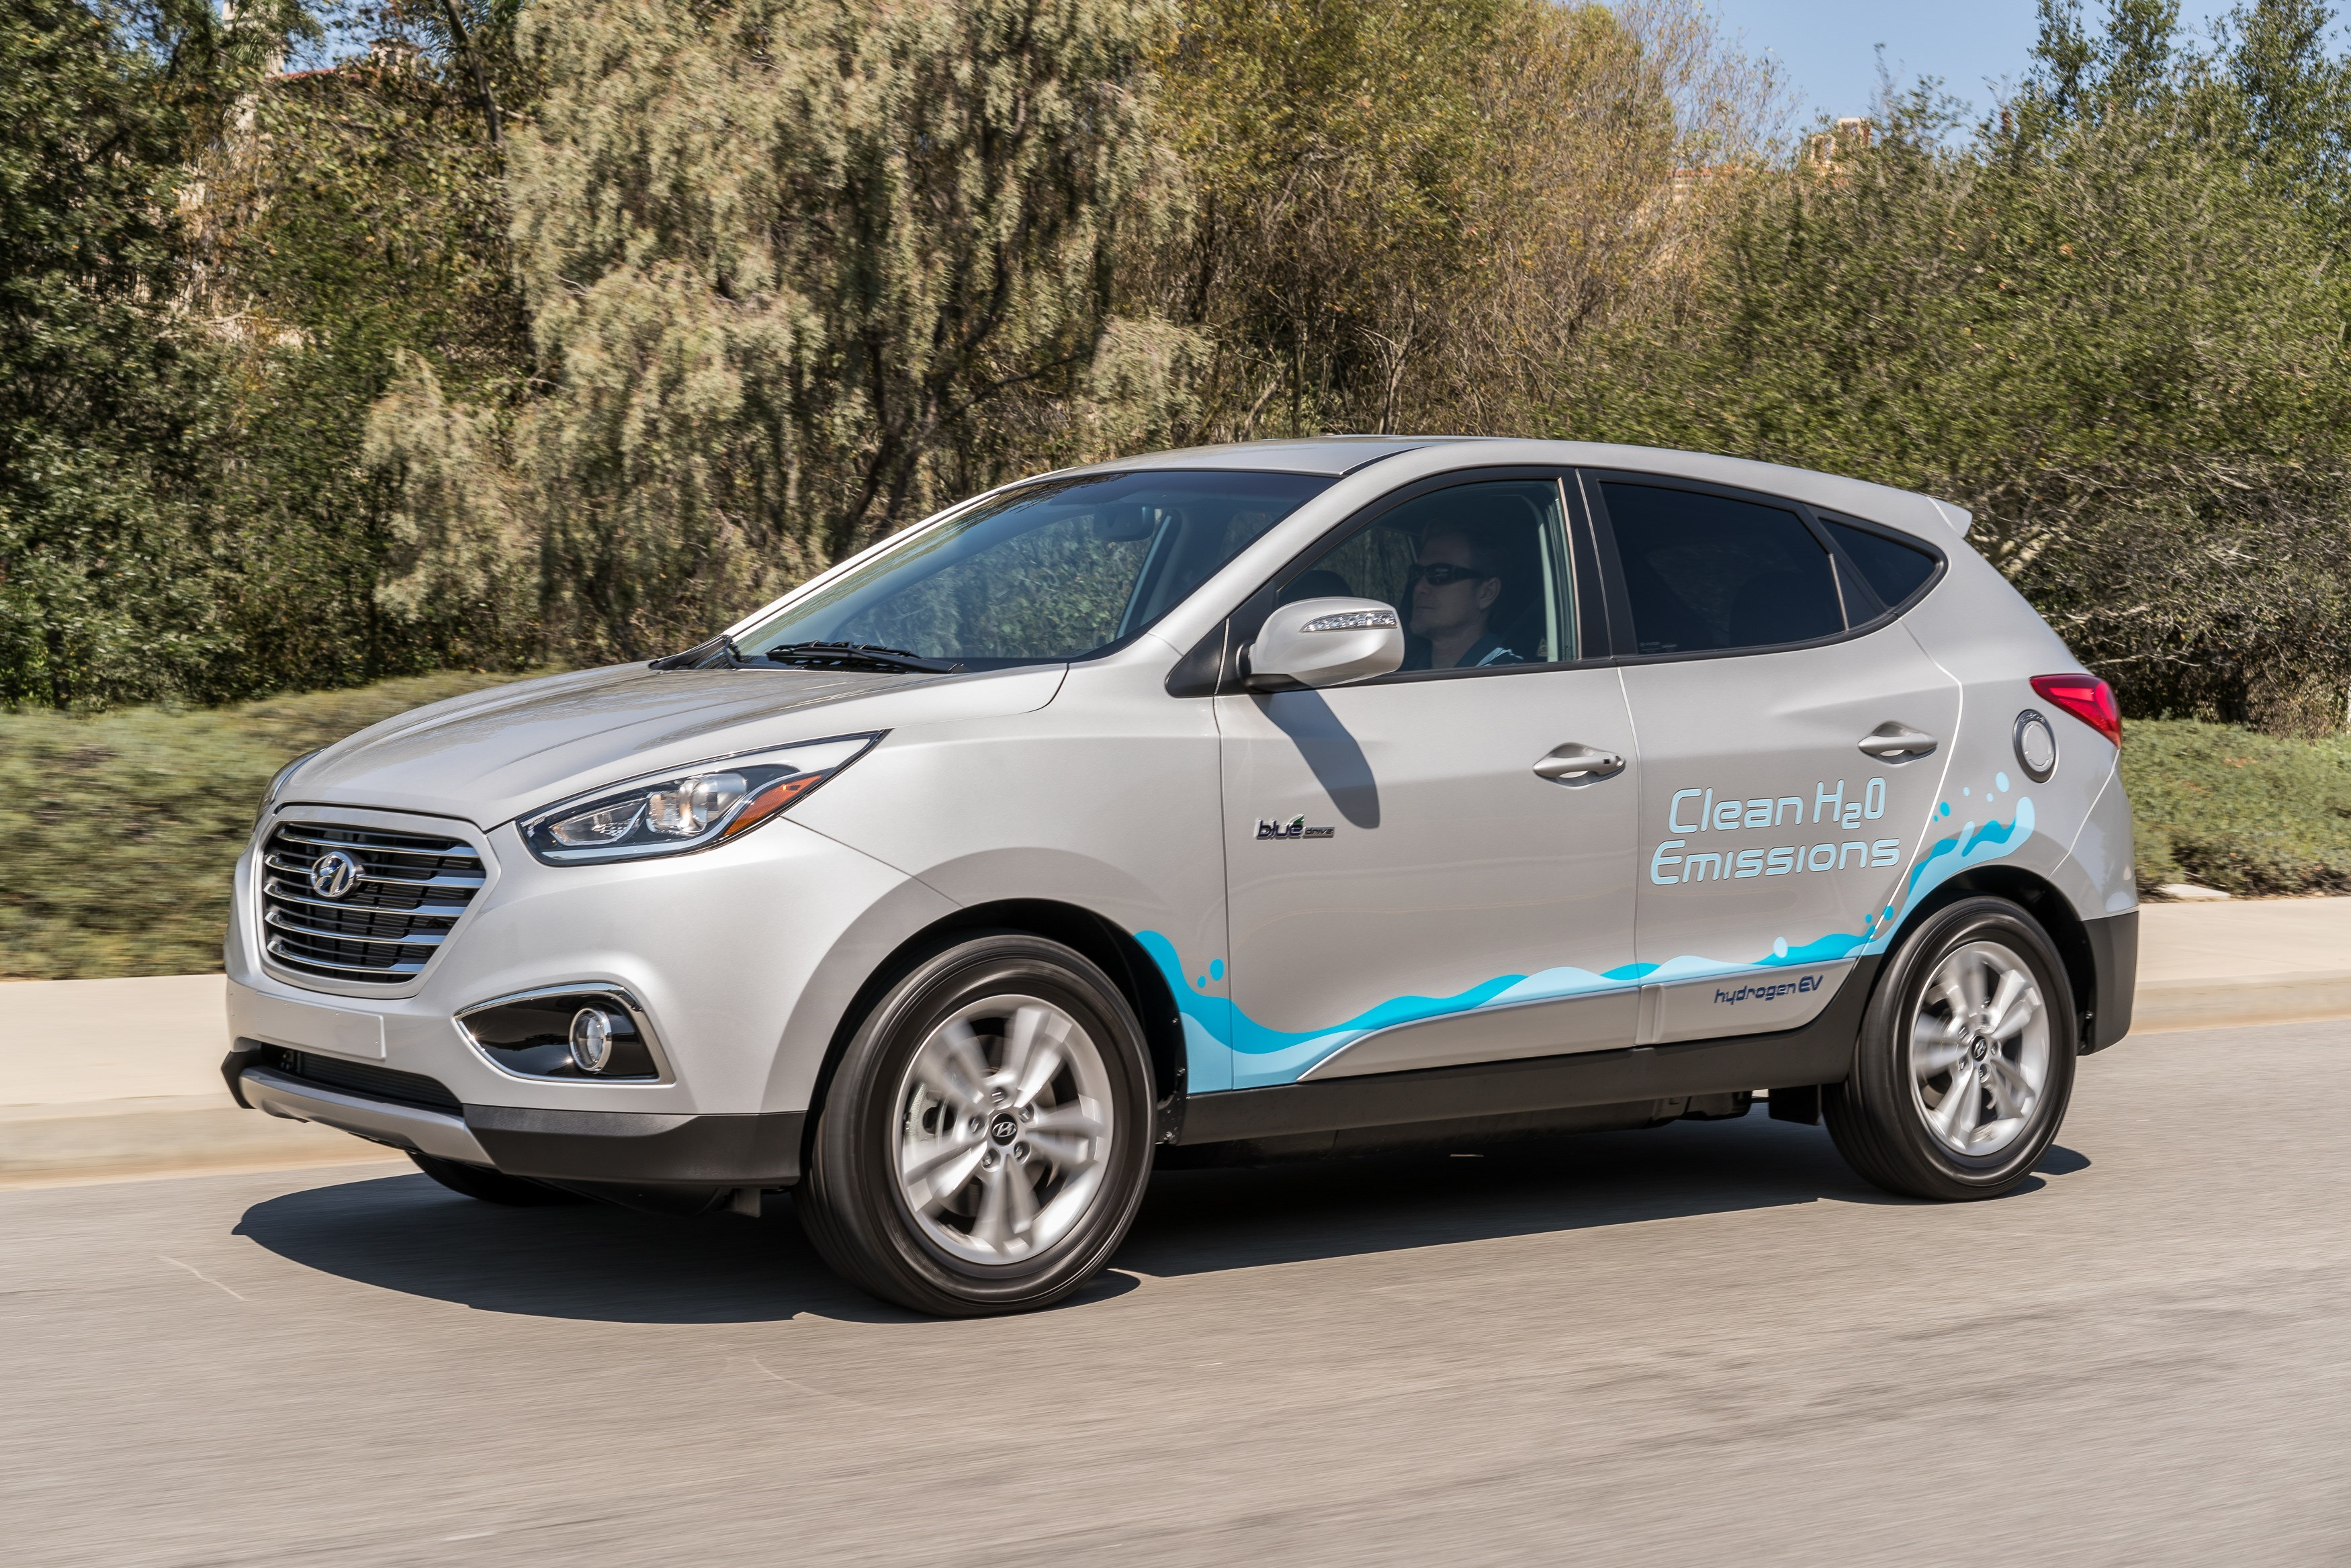 Hyundai Tucson Fuel Cell Drivers Accumulate More Than Three Million Zero-Emission Miles by National Hydrogen Day